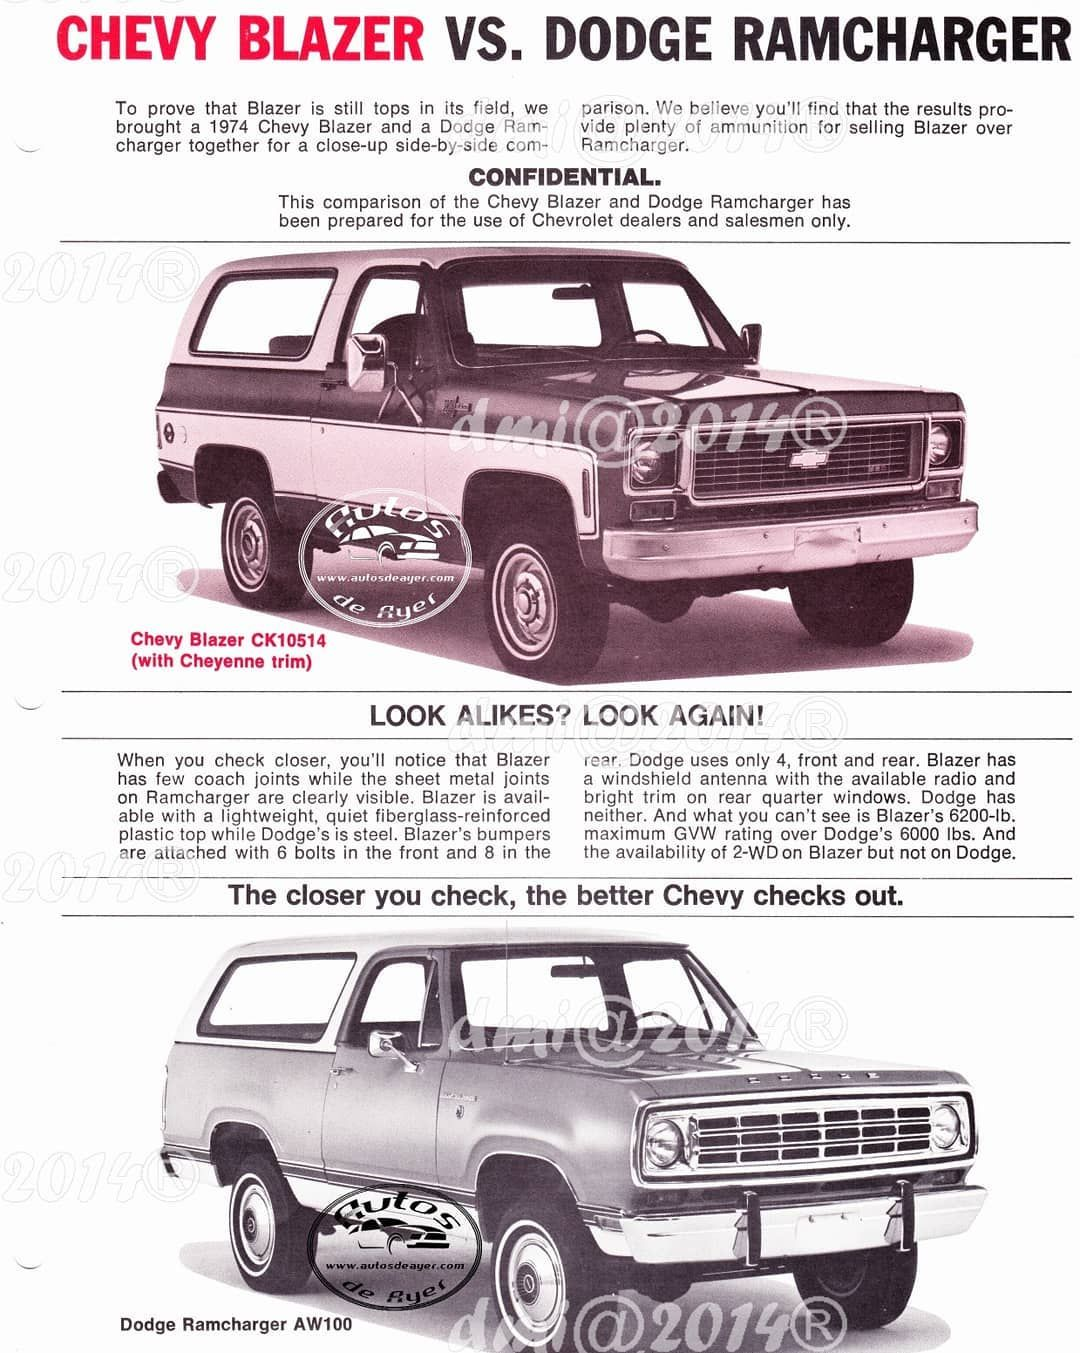 73 Chevrolet Blazer Vs Dodge Ramcharger Material Used For Sellers Of Chevrolet Agencies Chevrolet Dodge Ramcharger Chevrolet Blazer Chevy Pickup Trucks